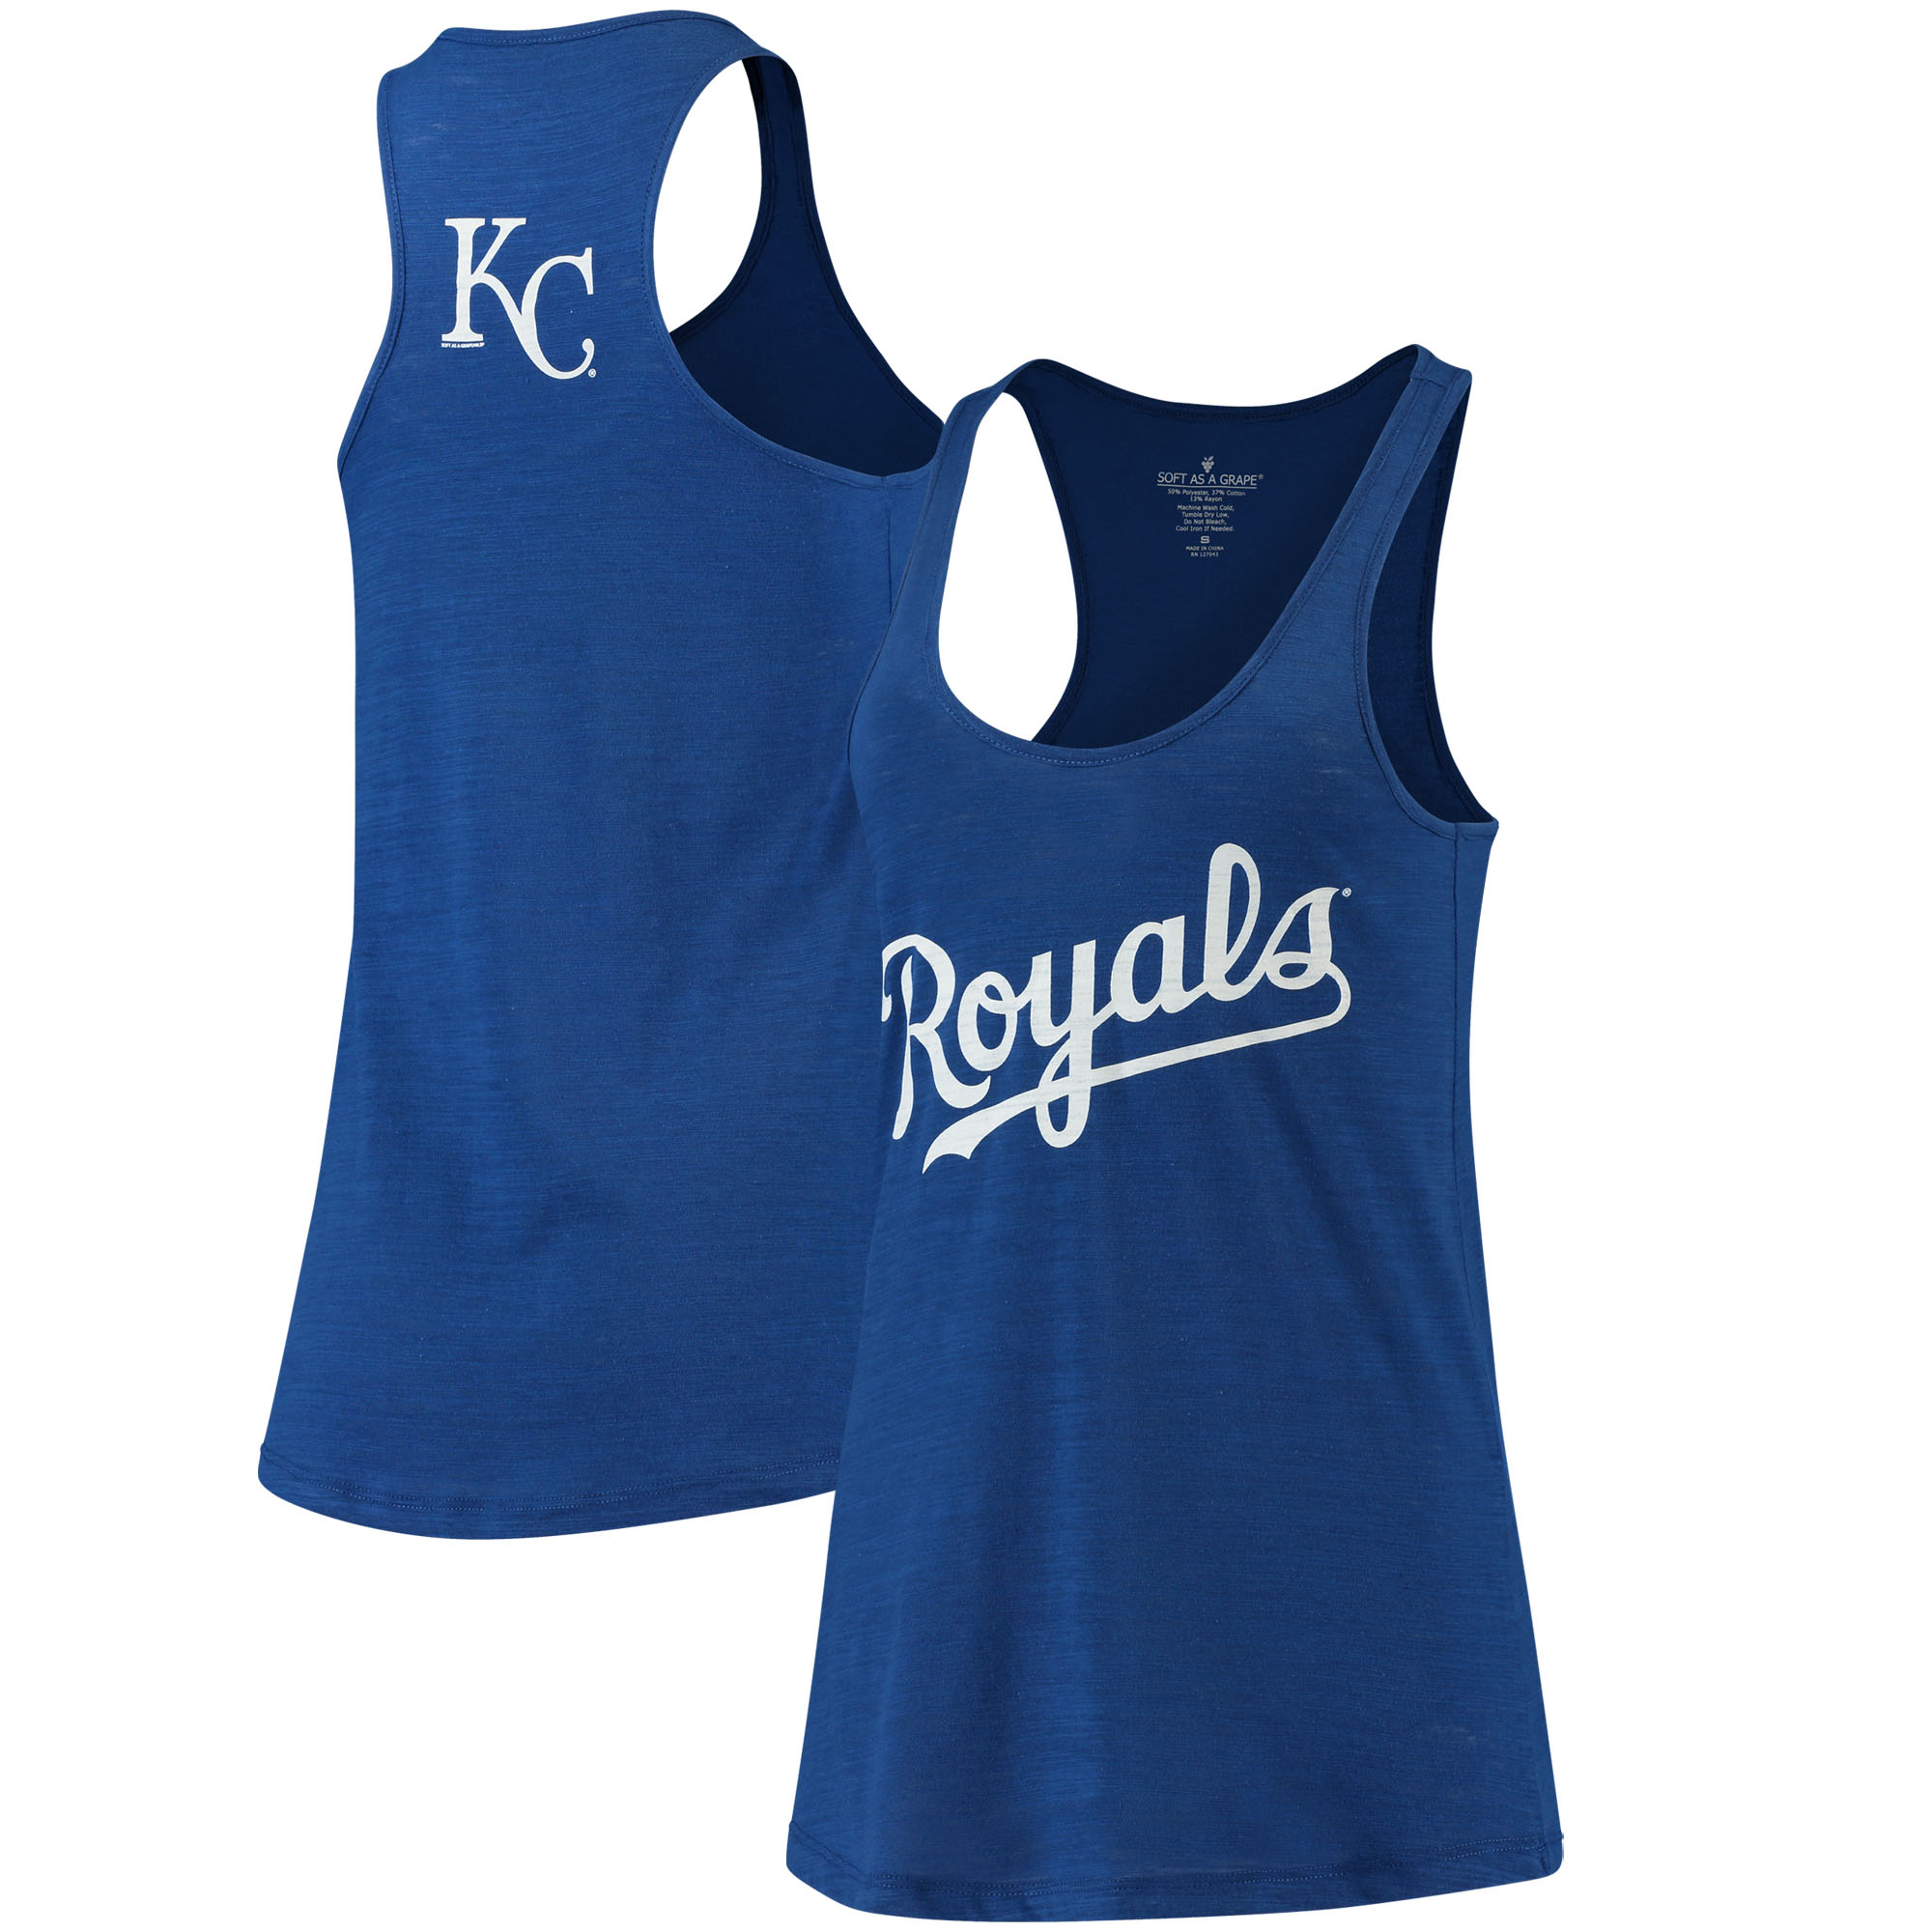 Kansas City Royals Soft As A Grape Women's Front & Back Tri-Blend Racerback Tank Top - Royal